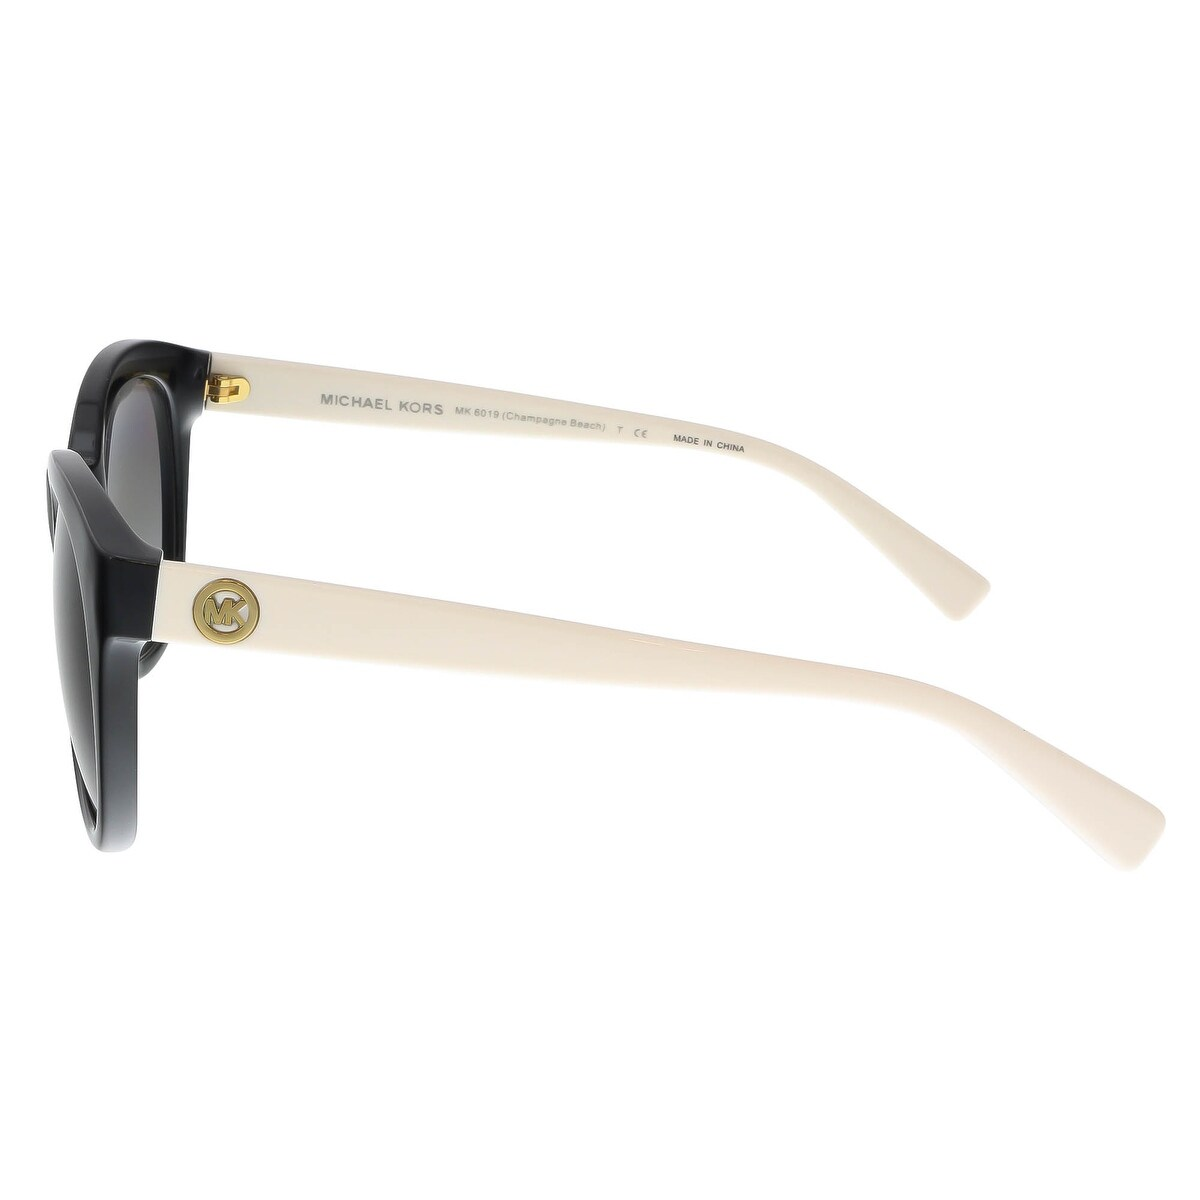 13def22bfb3c0 Shop Michael Kors MK6019 305211 Black Ivory Round Sunglasses - Free  Shipping Today - Overstock - 17001897